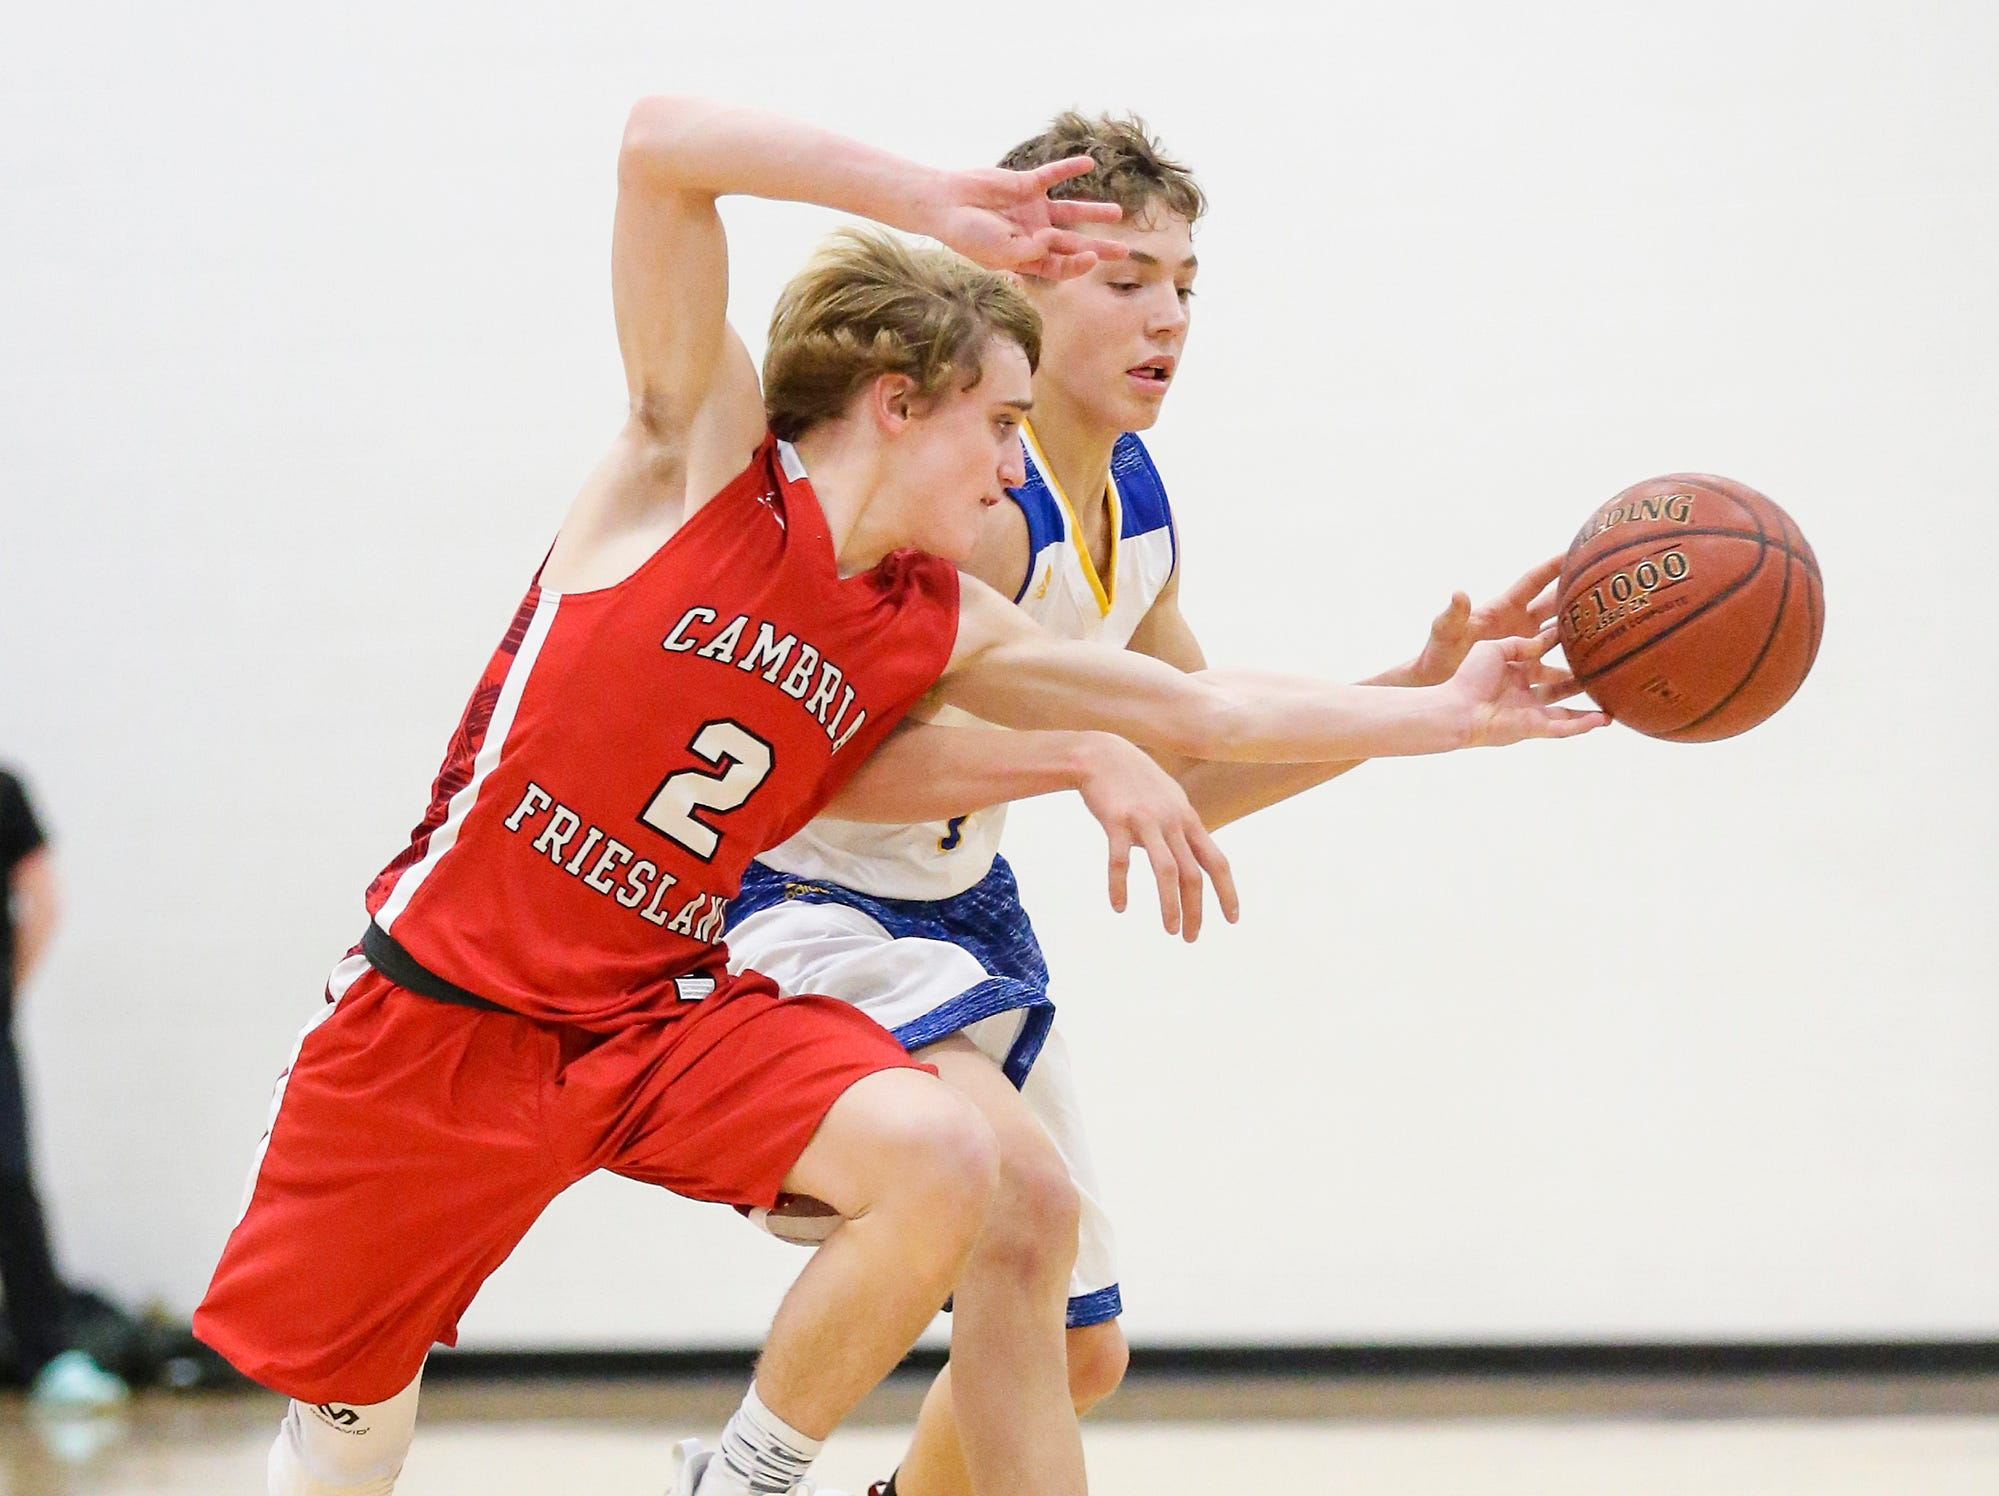 Central Wisconsin Christian High School boys basketball's Riley Westra gets the ball knocked away from him by Cambria-Friesland's Cade Burmania during their game Thursday, January 3, 2019 in Waupun. Cambria-Friesland won the game 62-61. Doug Raflik/USA TODAY NETWORK-Wisconsin